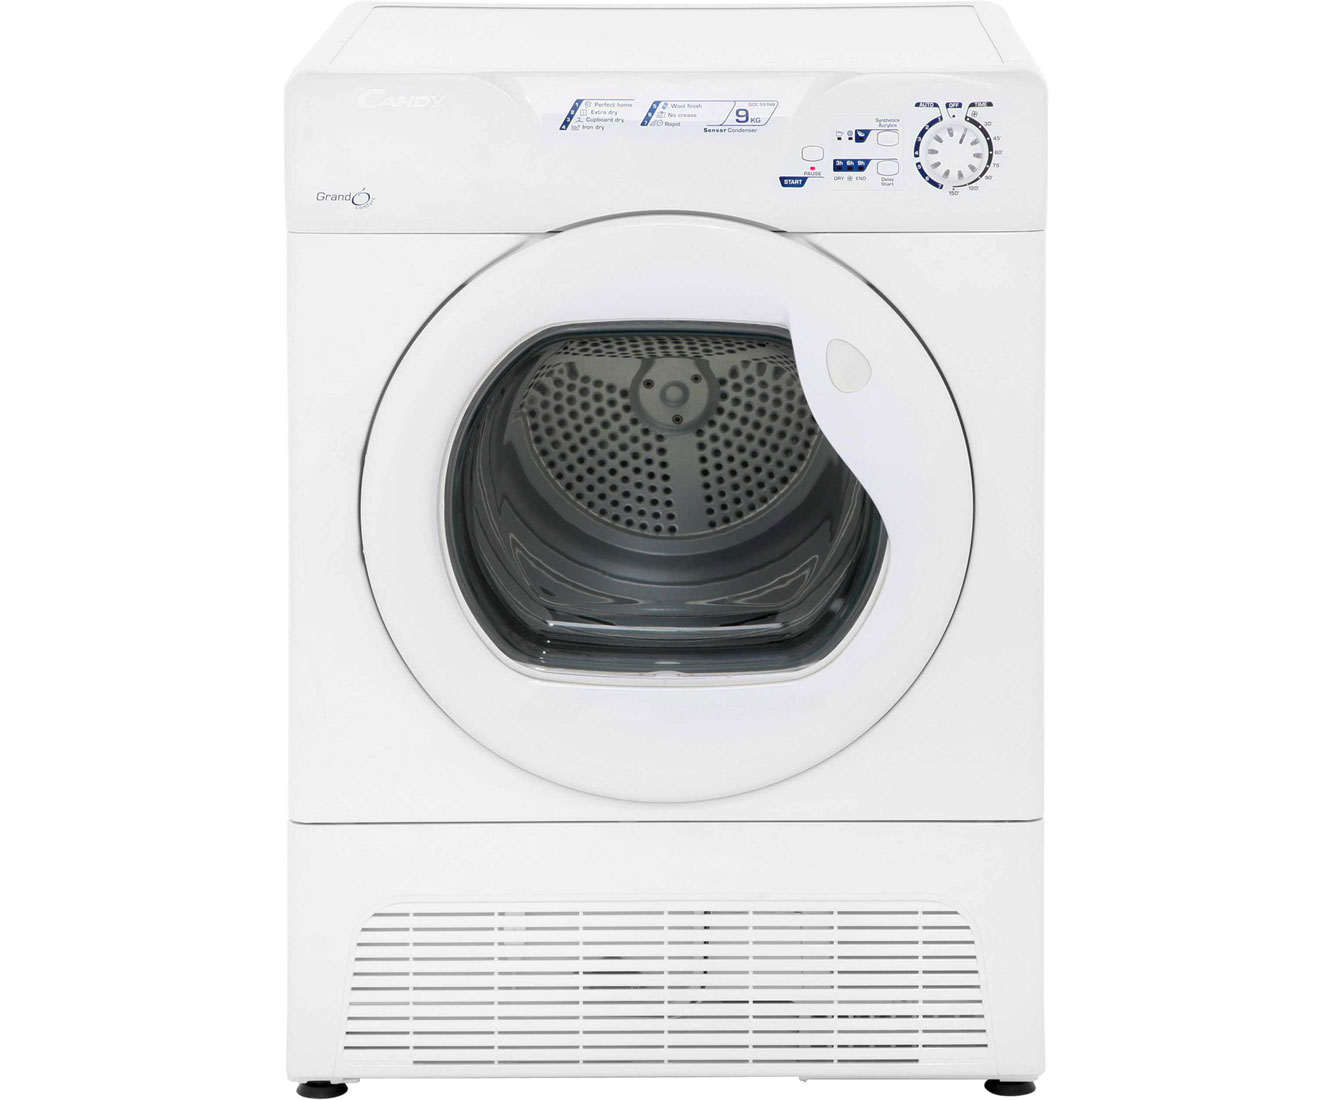 Candy Grand'O GCC591NB Condenser Tumble Dryer - White